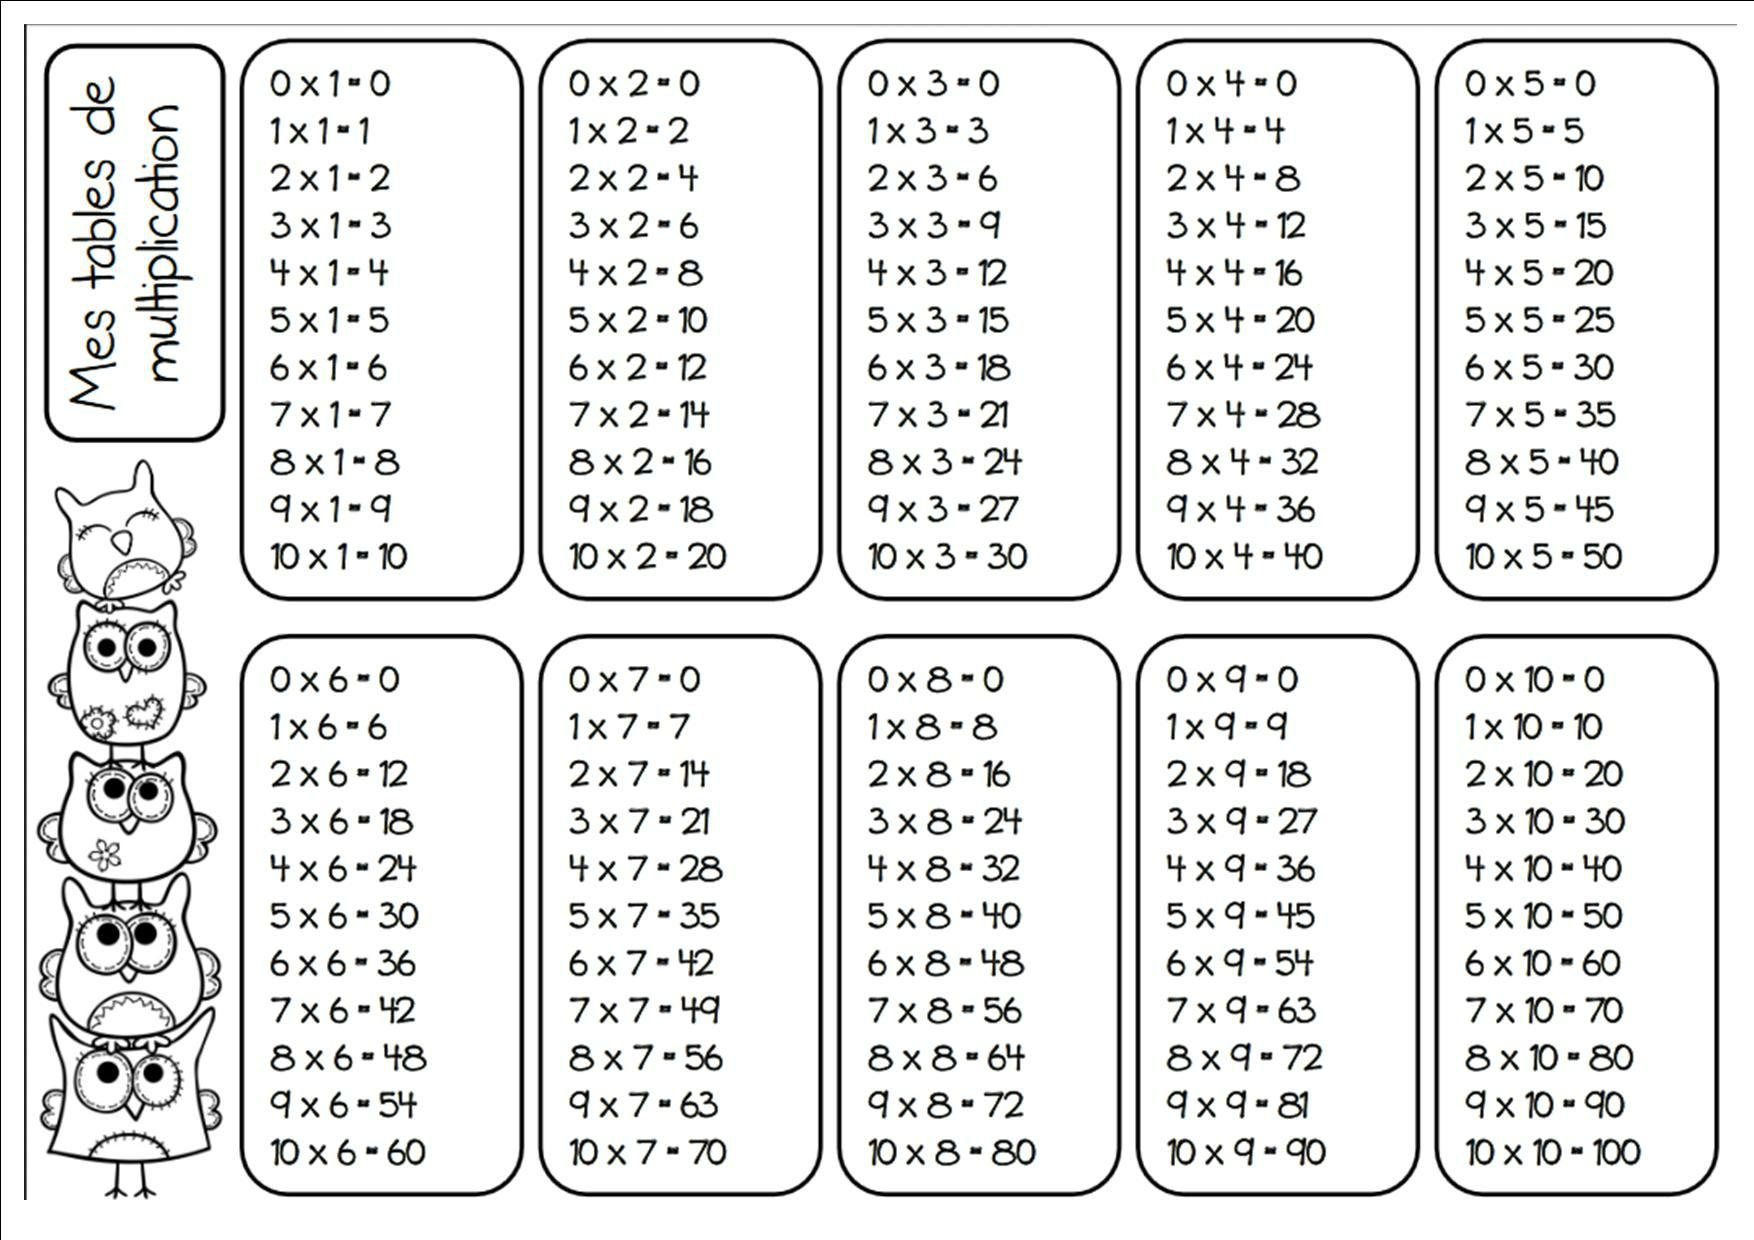 Image Maths 8 Ce2 La Multiplication La Classe Des Ce De Villebois Exercices Tables De Multiplication Table De Multiplication Multiplication